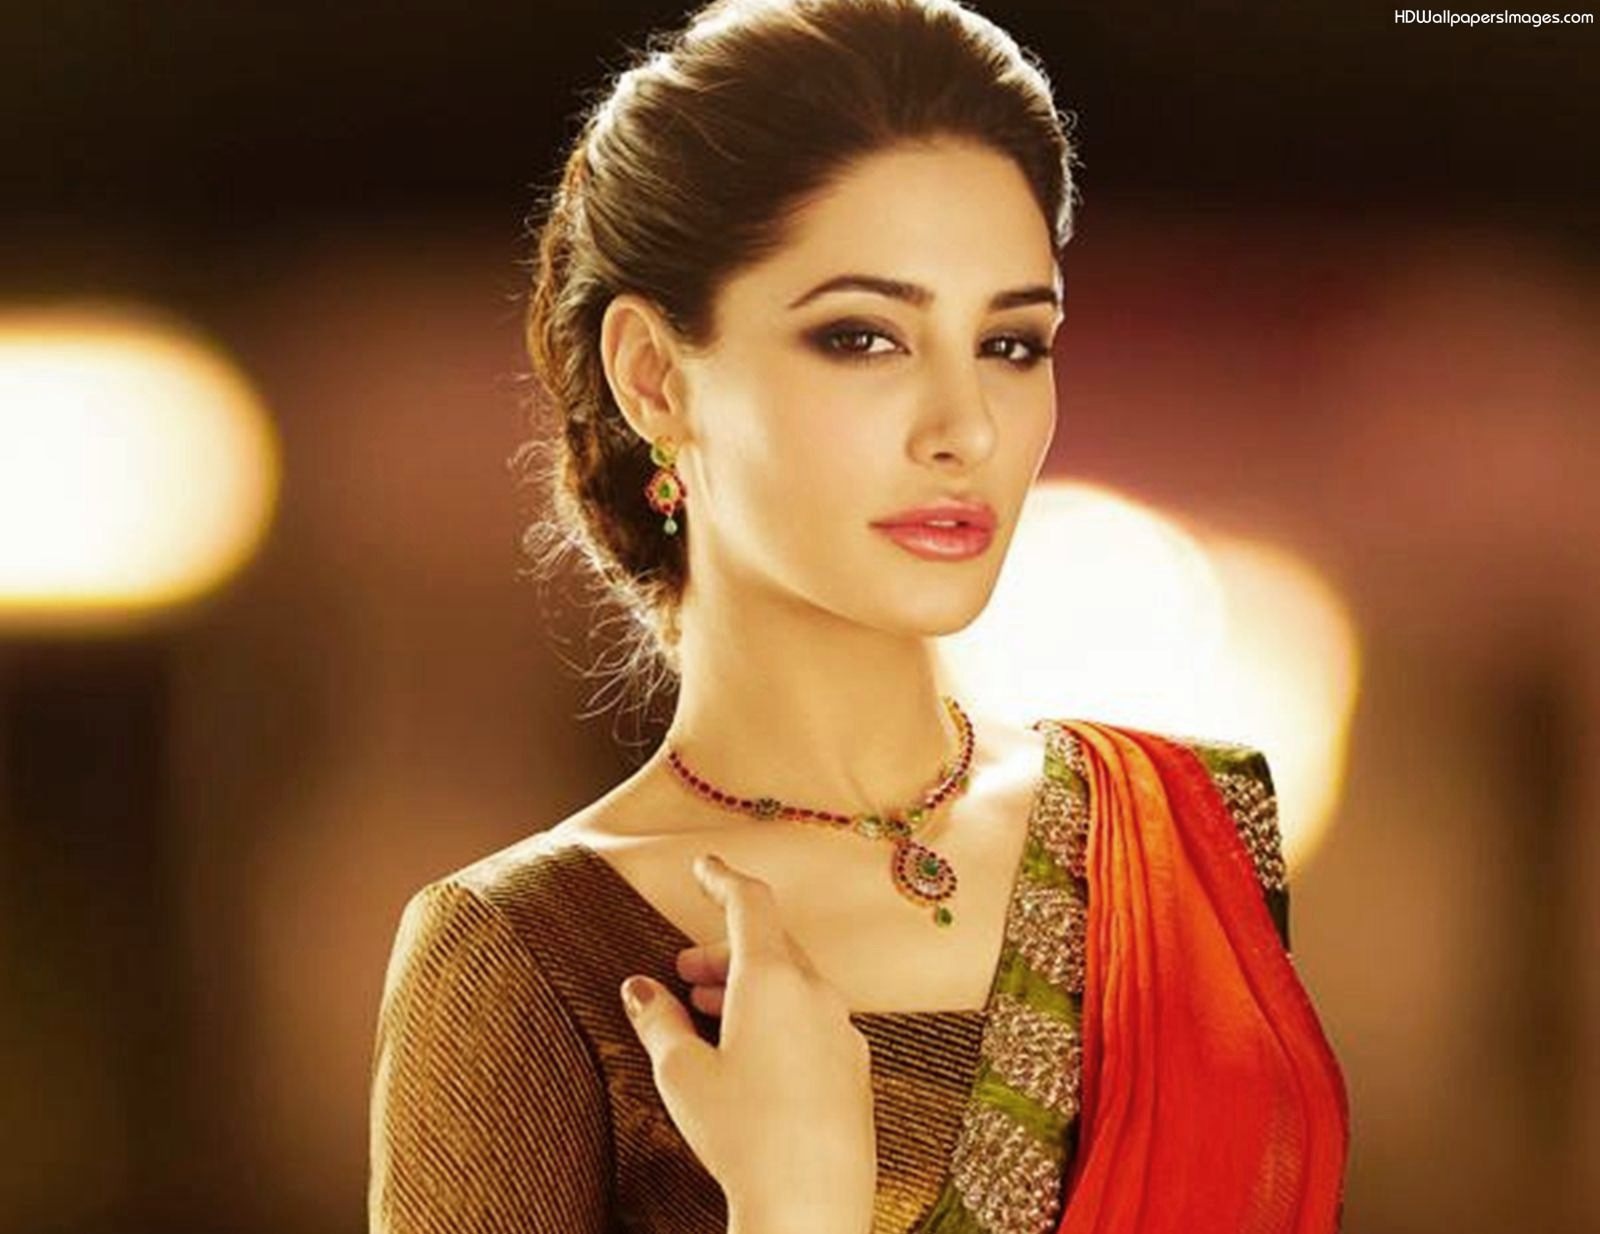 Nargis Fakhri Wallpapers High Resolution And Quality Download